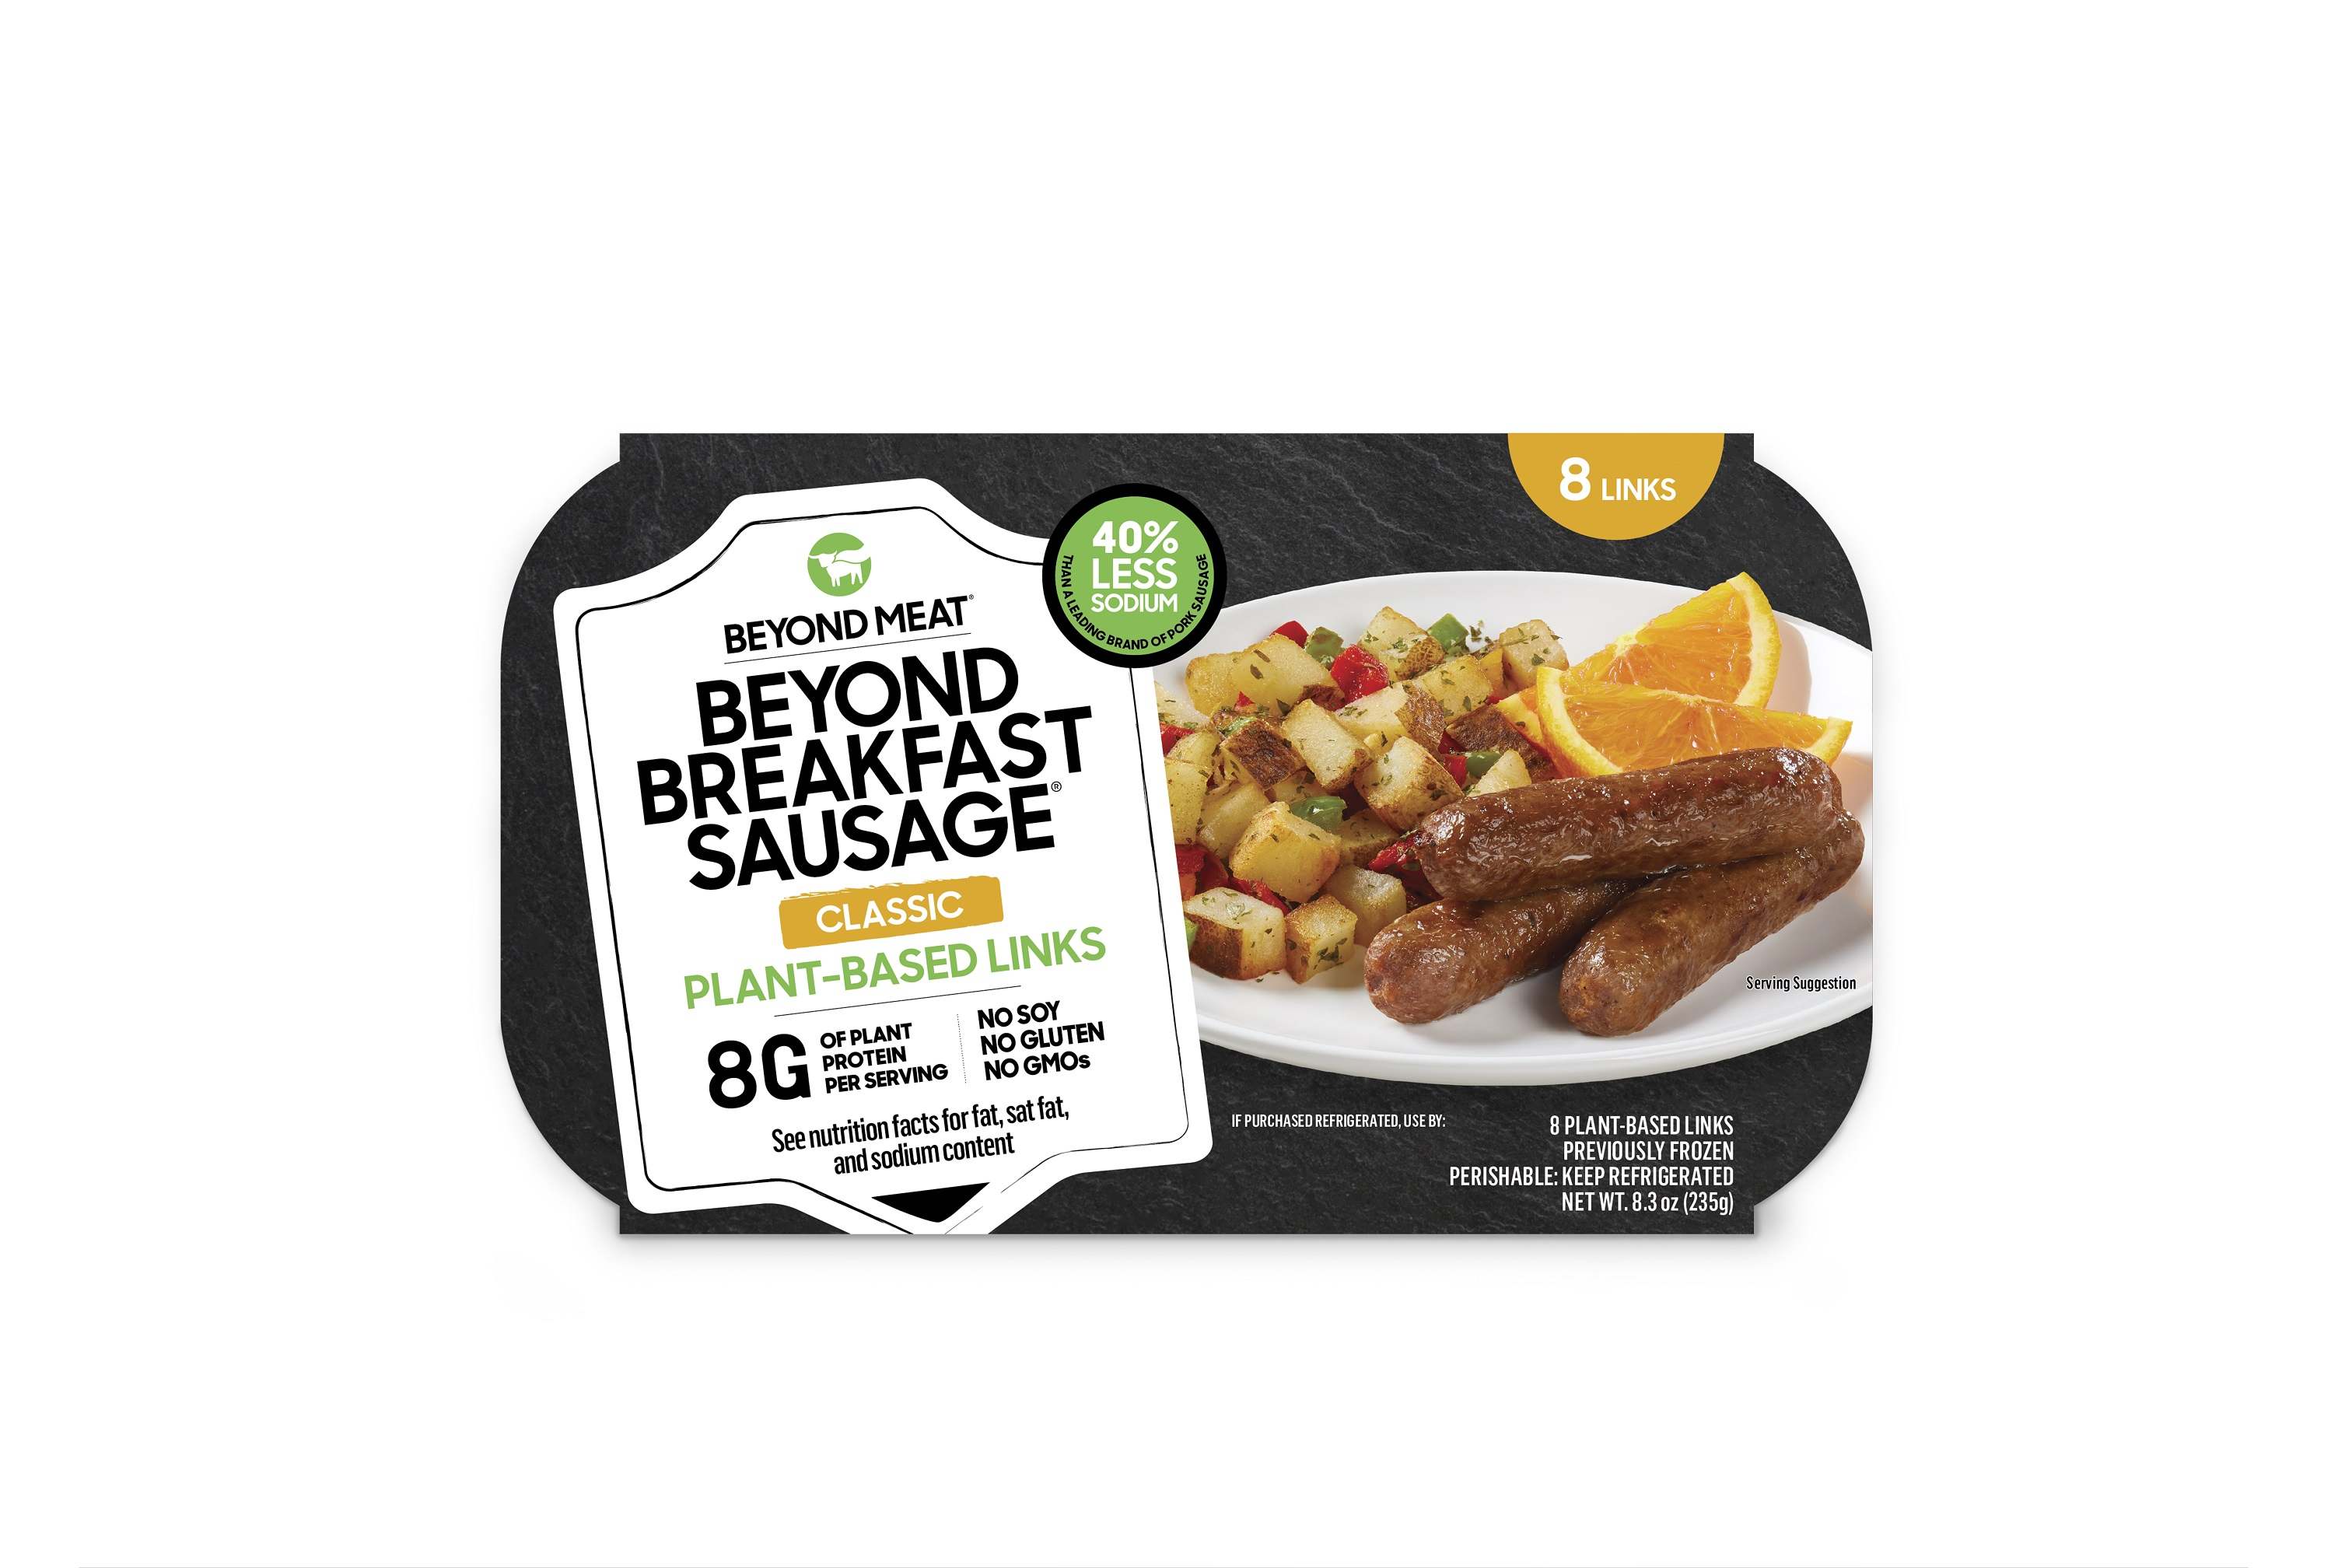 BEYOND BREAKFAST SAUSAGE LINKS